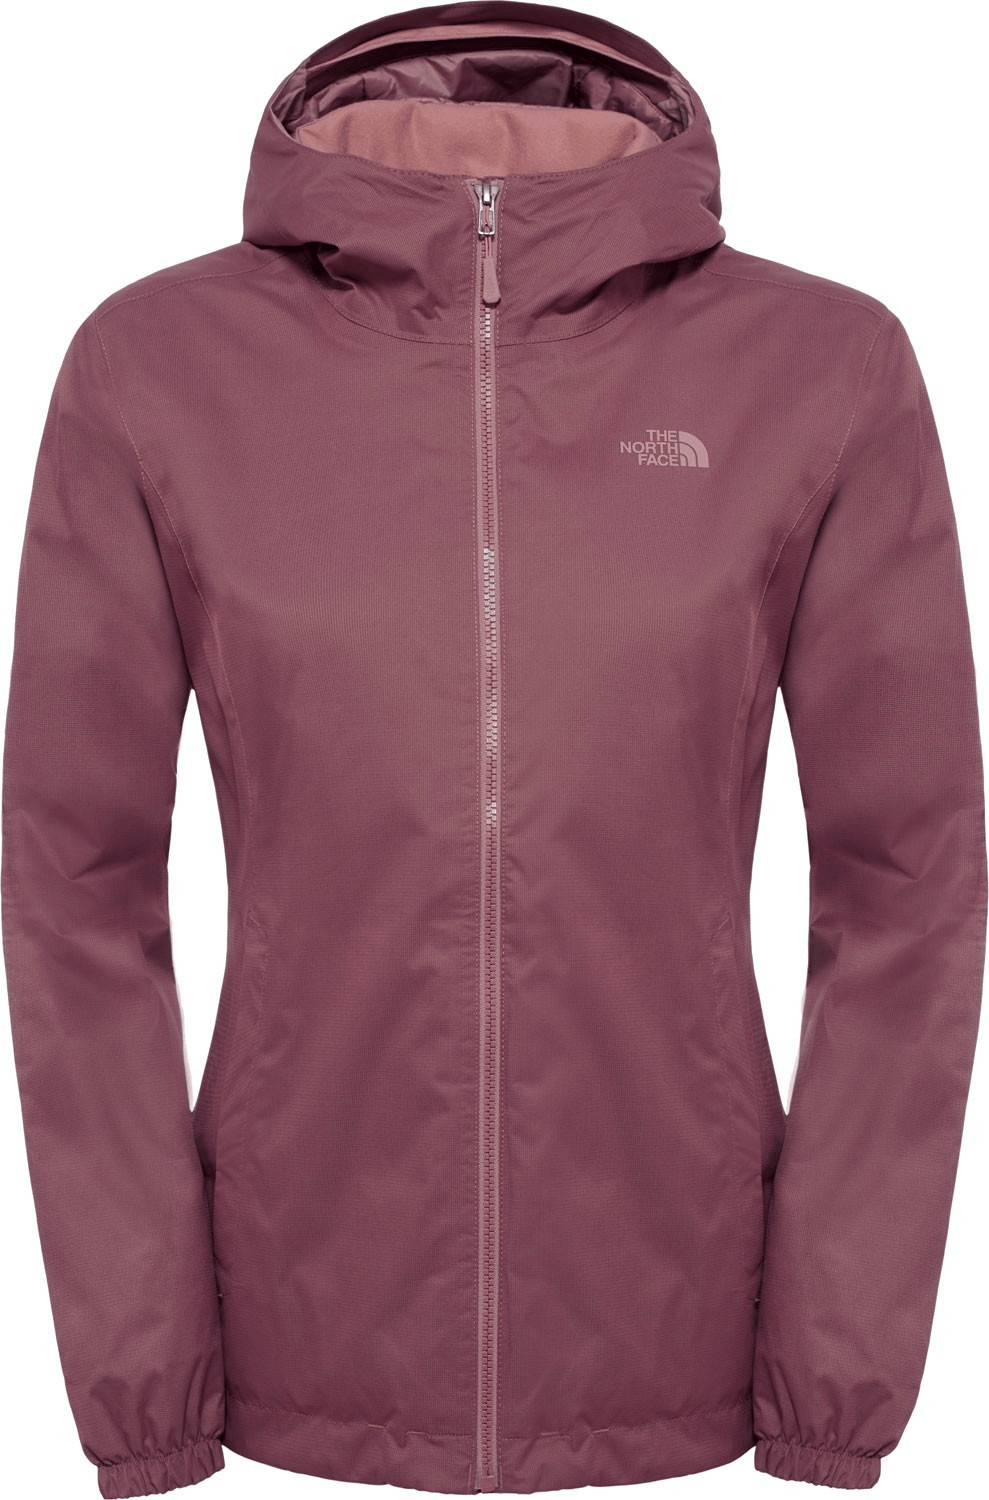 The North Face Women´s Quest Insulated Jacket R...